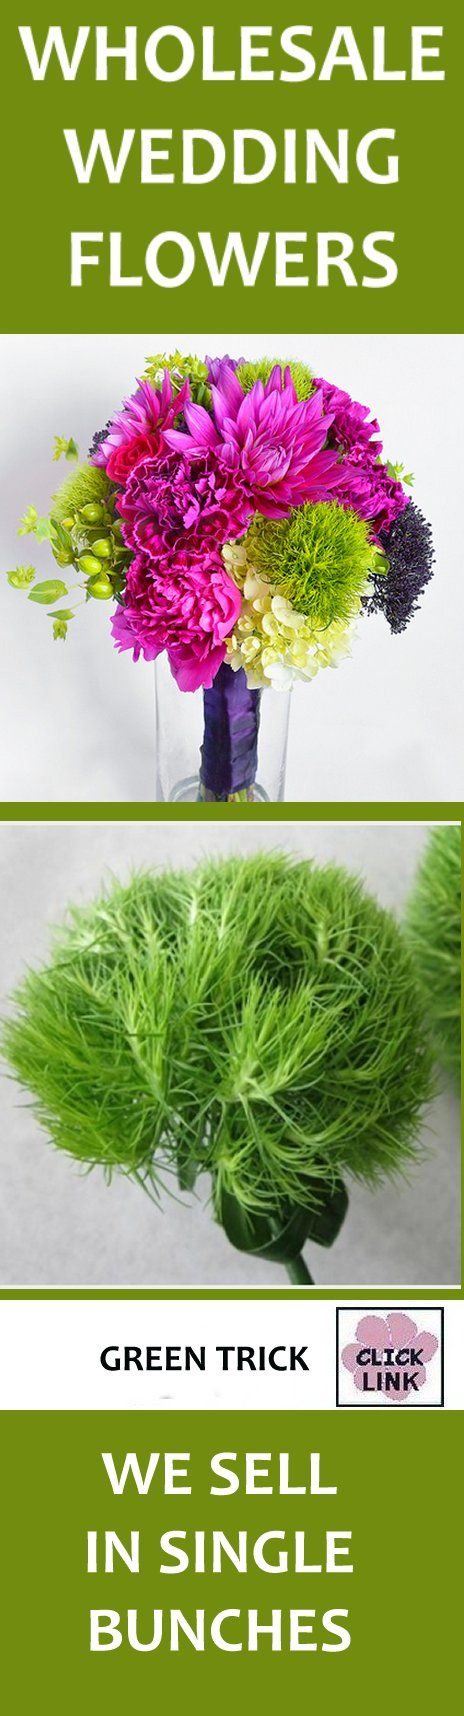 wedding flowers wholesale green trick dianthus neat flowers that add interest to your wedding bouquets